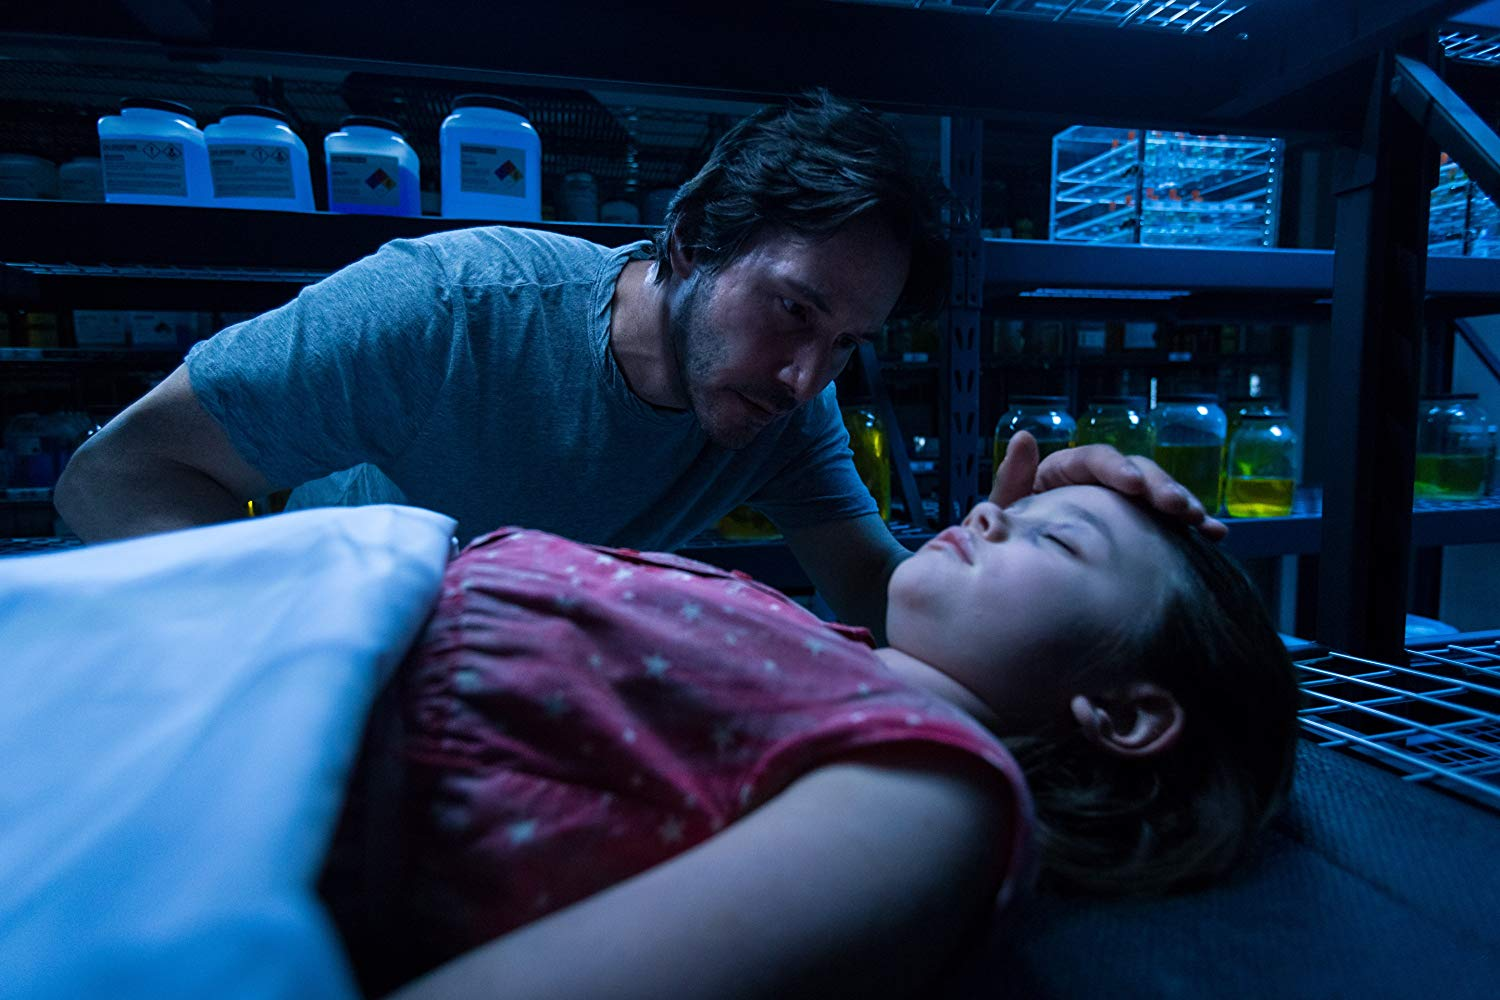 Keanu Reeves brings daughter Emily Alyn Lind back to life in Replicas (2018)